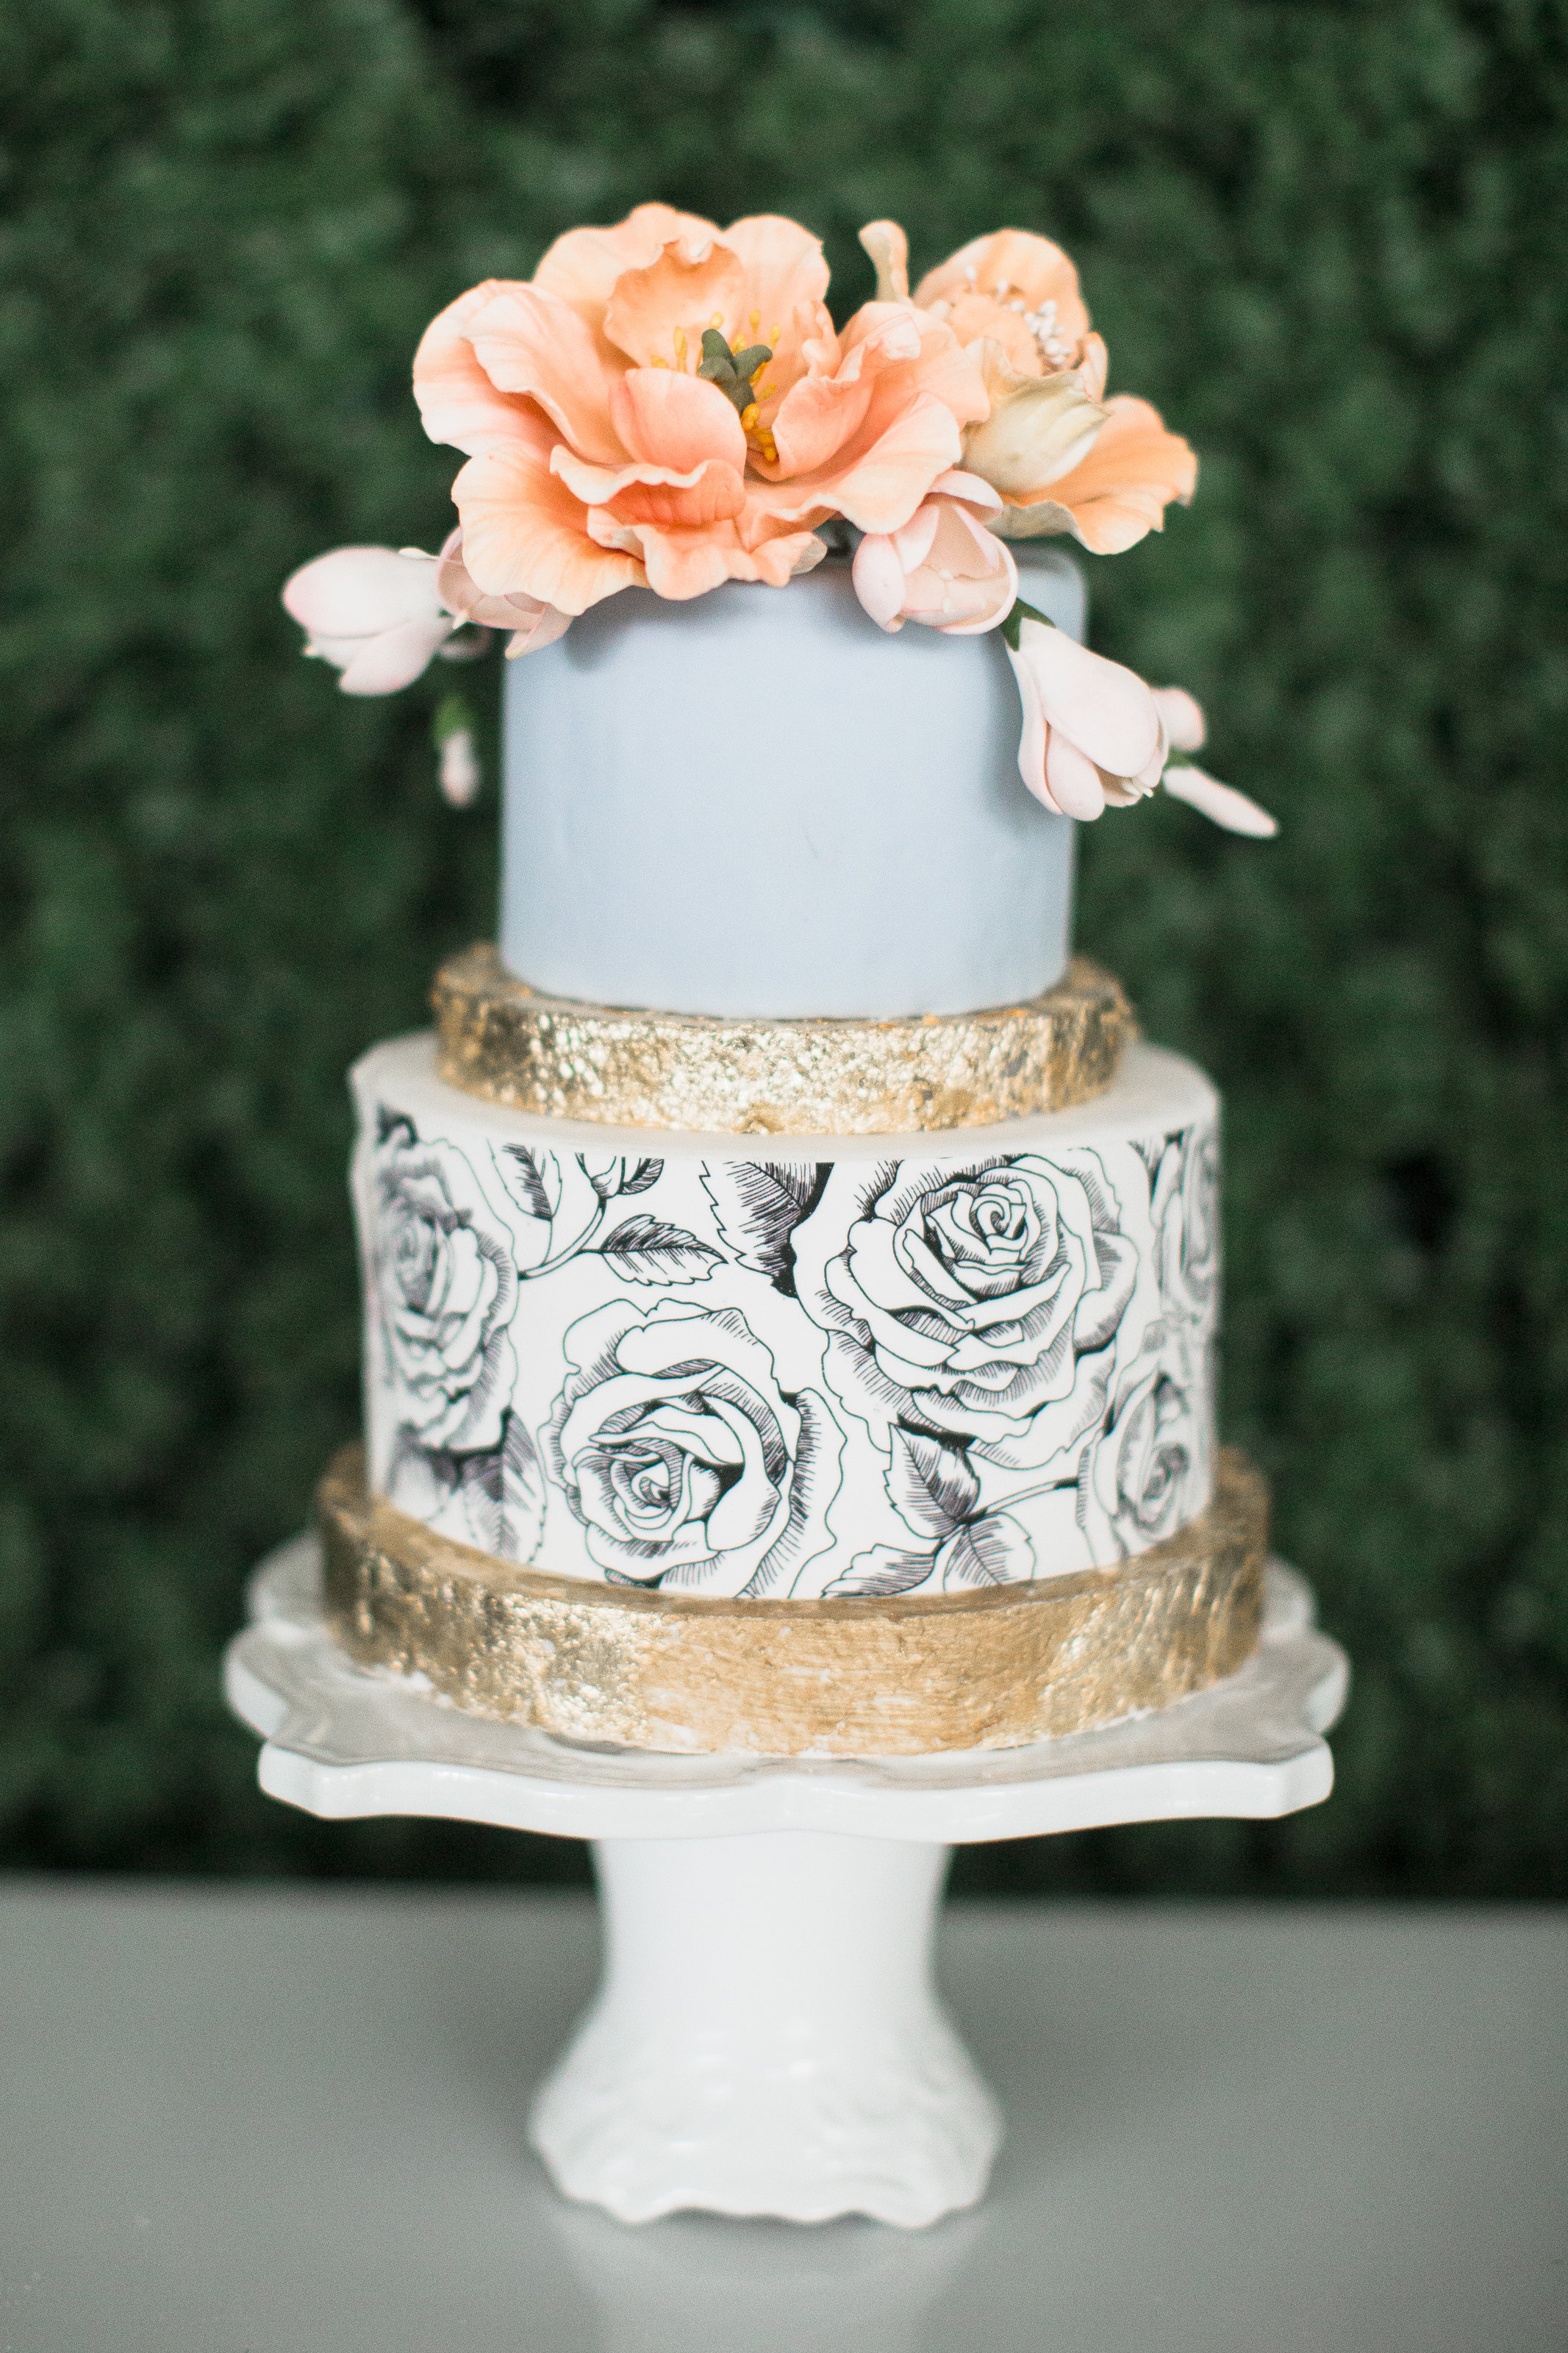 Baby blue fondant wedding cake with hand painted black roses and gold accents